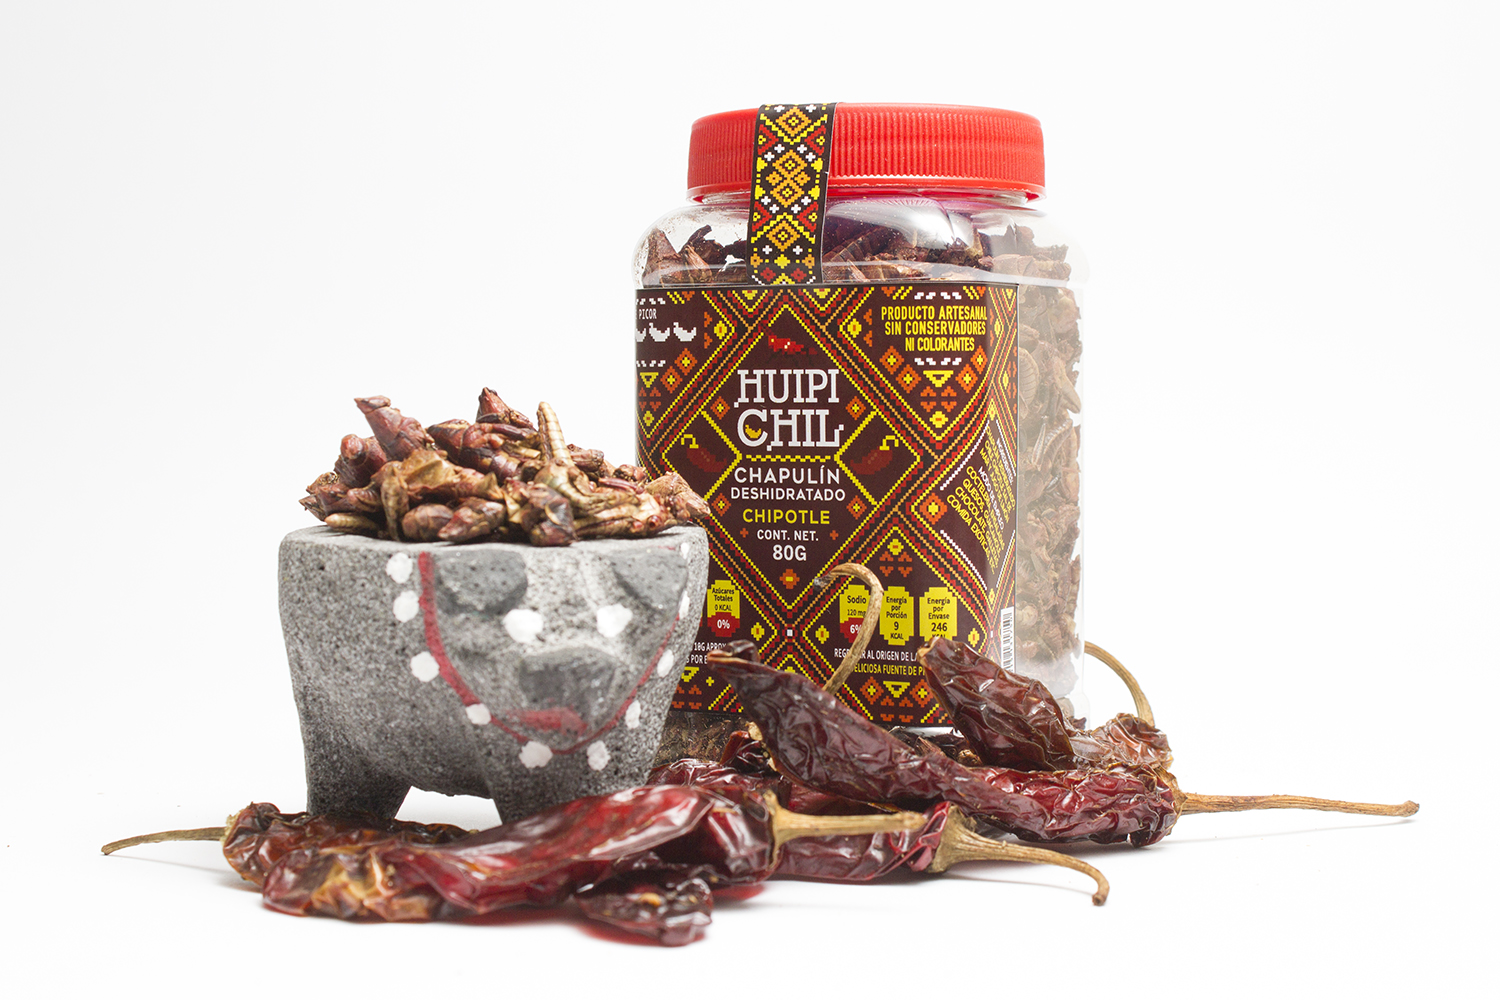 Mex-Can Gourmet Artisan Products